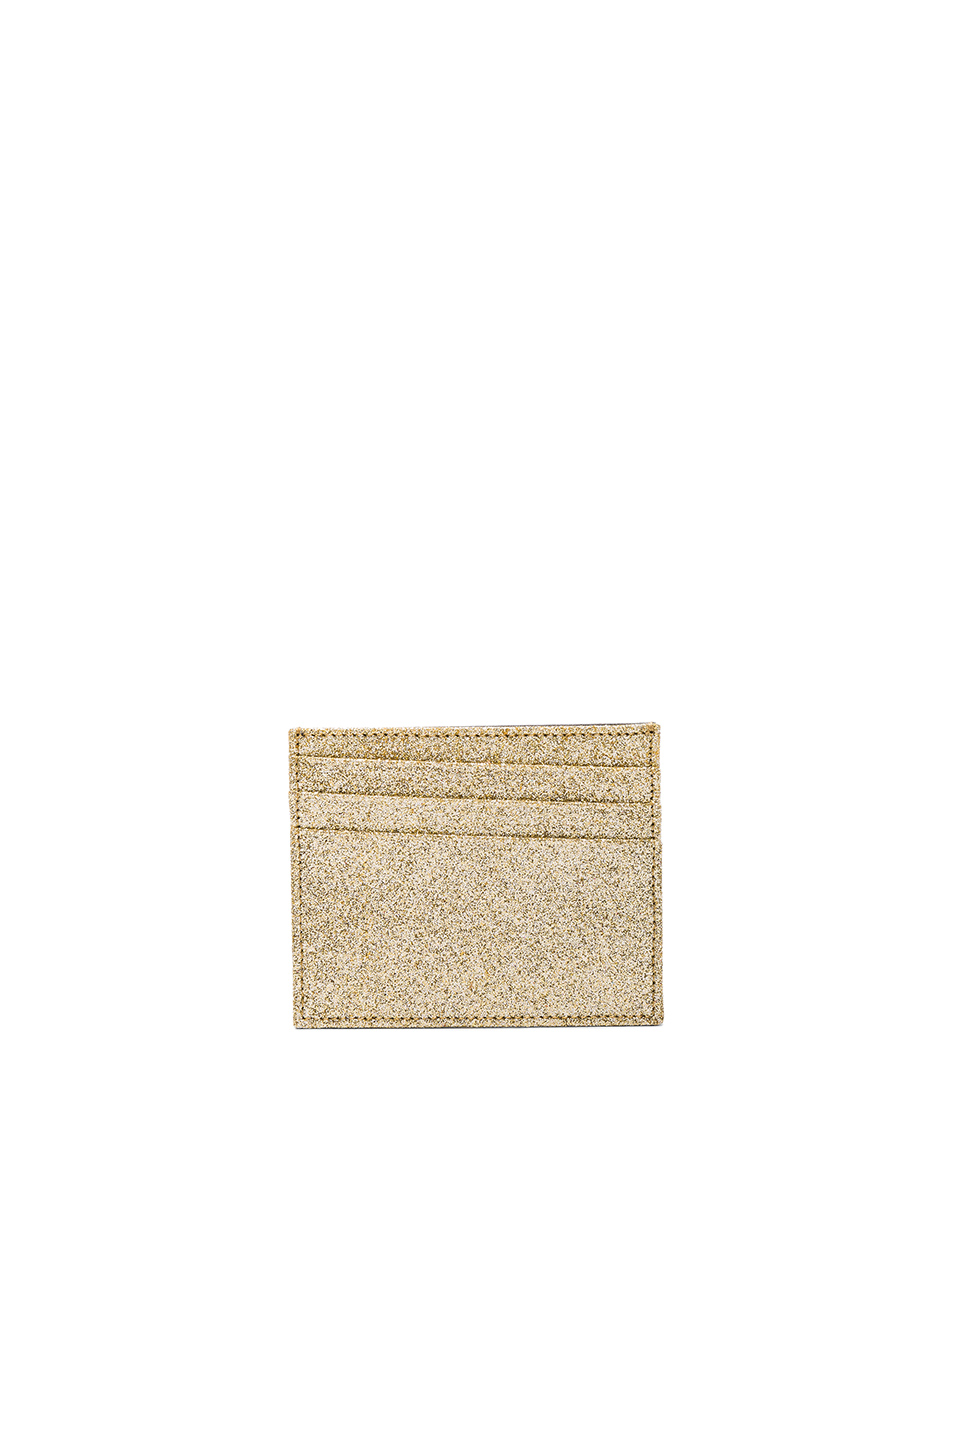 Maison Margiela Glitter & Calf Leather Cardholder in Metallics